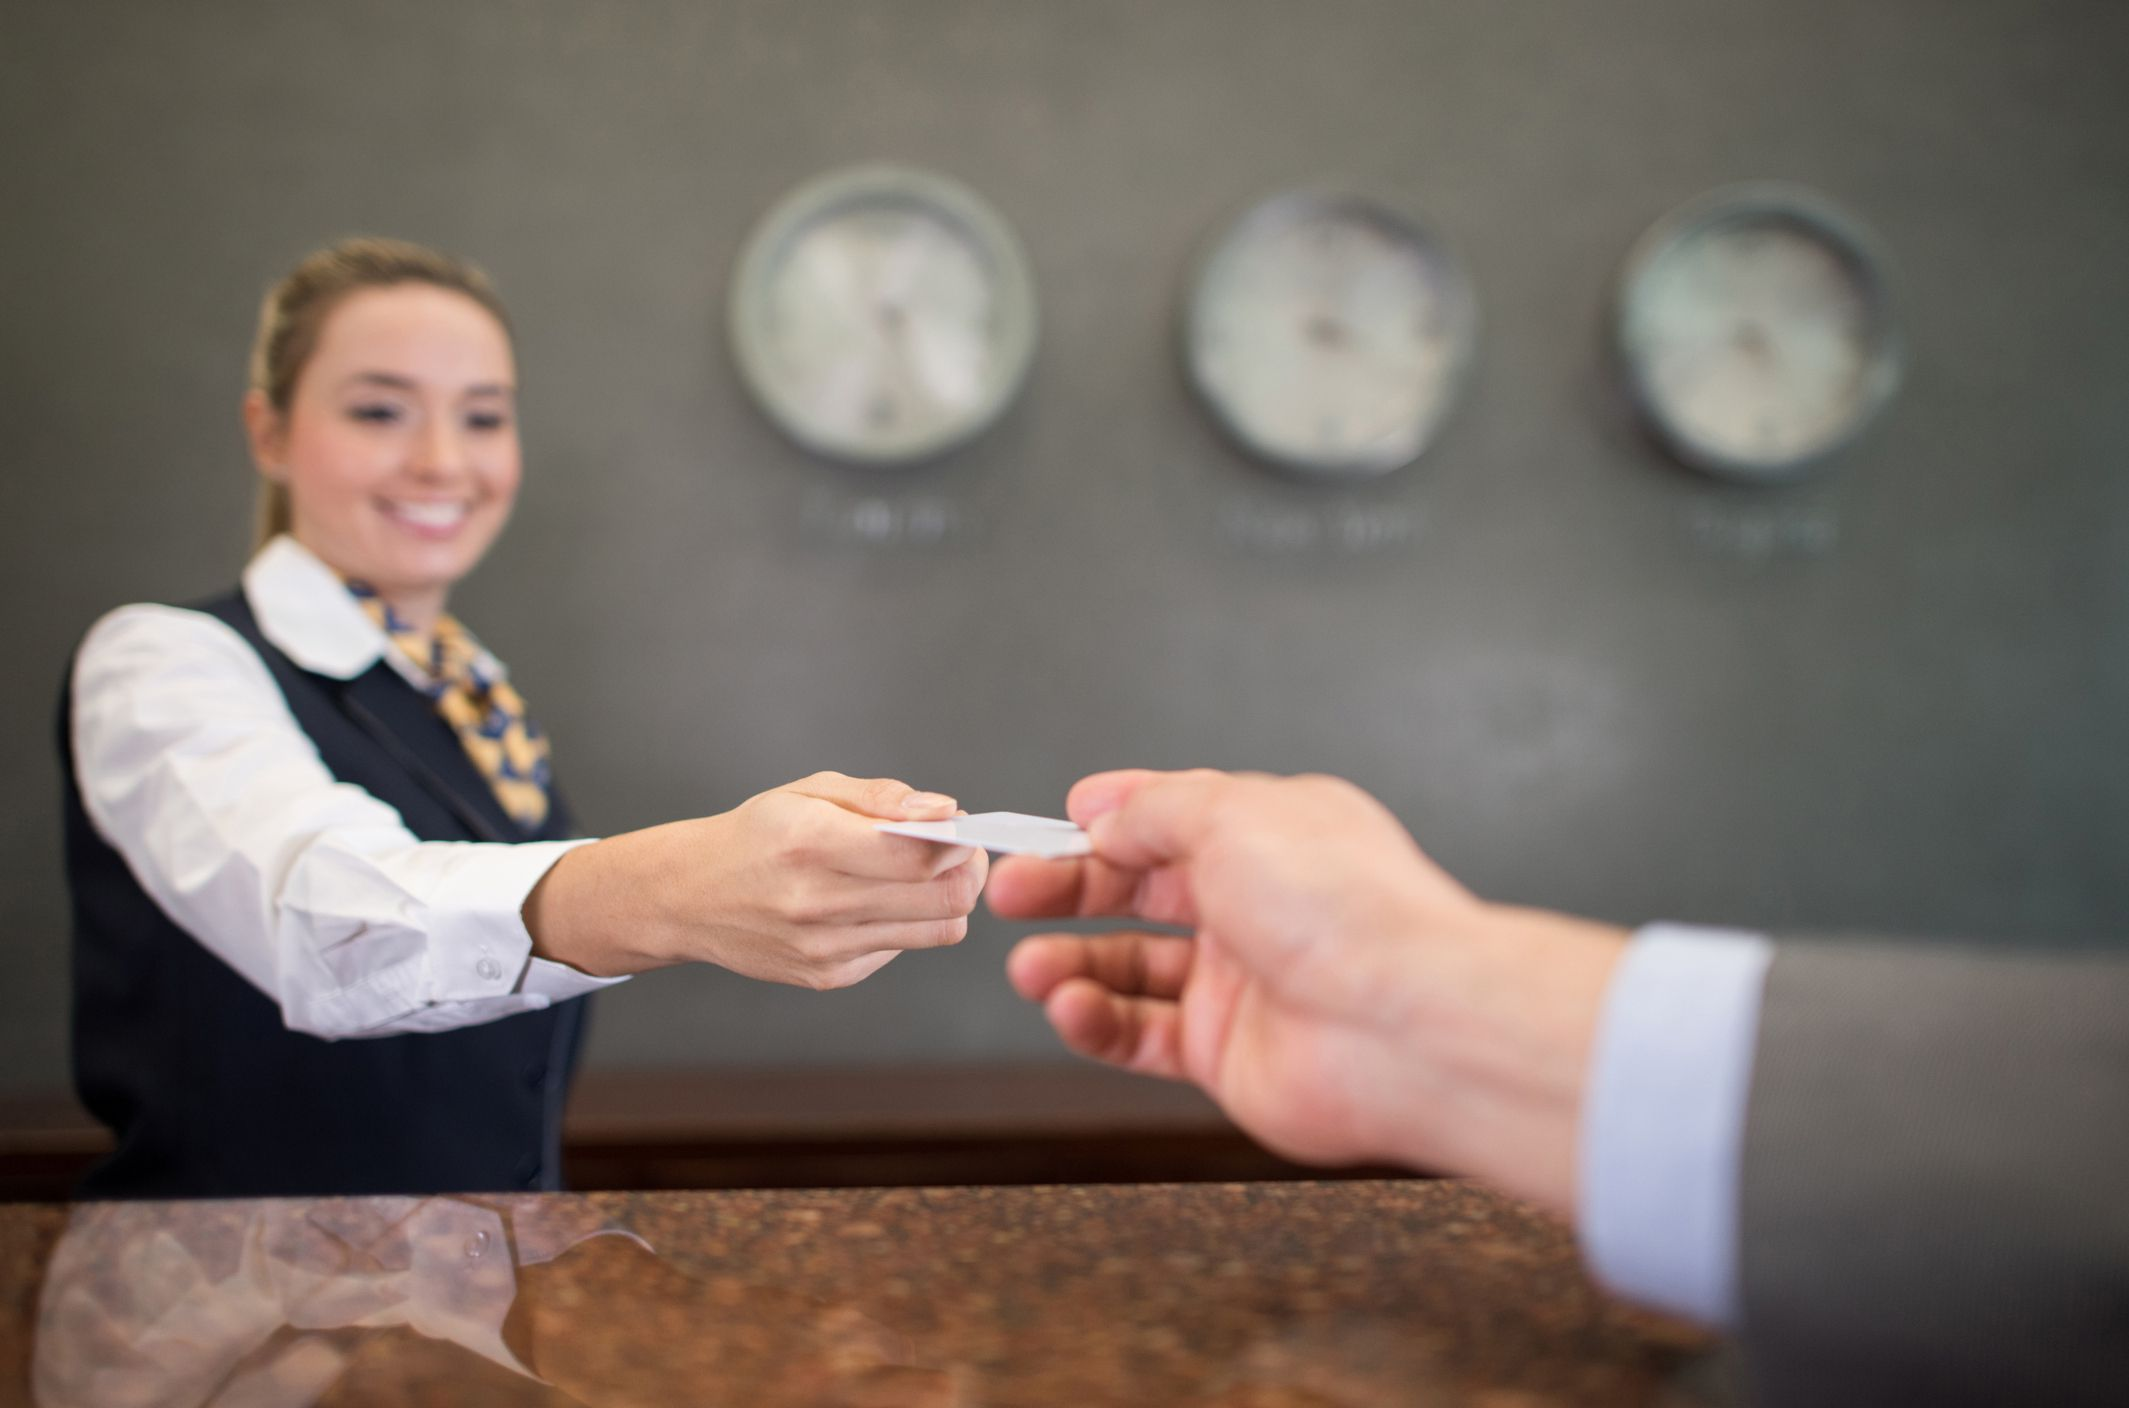 A woman working at a hotel handing over a loyalty card to a customer